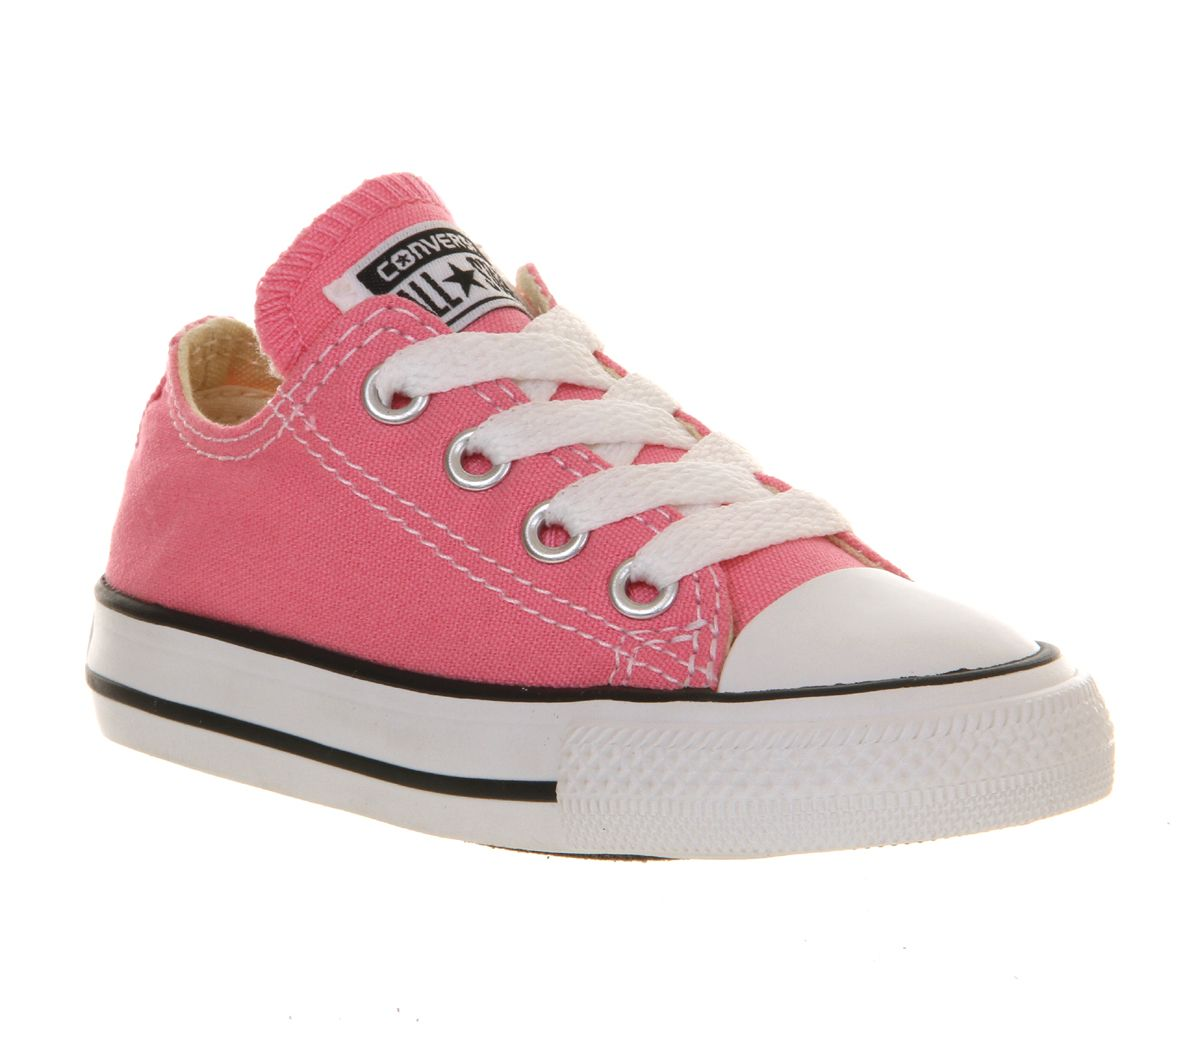 Details zu Kinder Converse All Star Low Kleinkind Schuhe Rosa Kinder